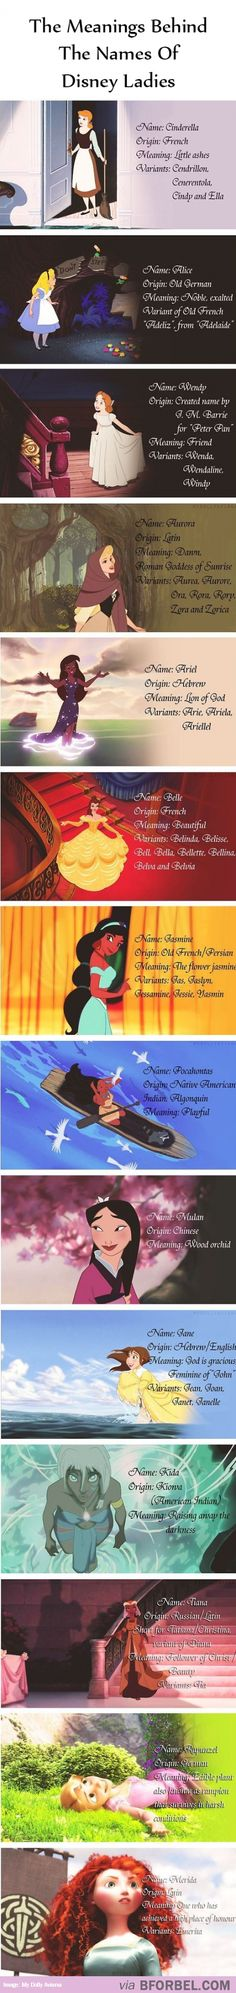 The Meanings Behind The Names Of The Disney Ladies - I knew about Aurora, but wow, Wendy didn't exist before JM Barrie created it? Disney Pixar, Walt Disney, Disney Facts, Disney Quotes, Disney Girls, Disney And Dreamworks, Disney Love, Disney Magic, Disney Characters